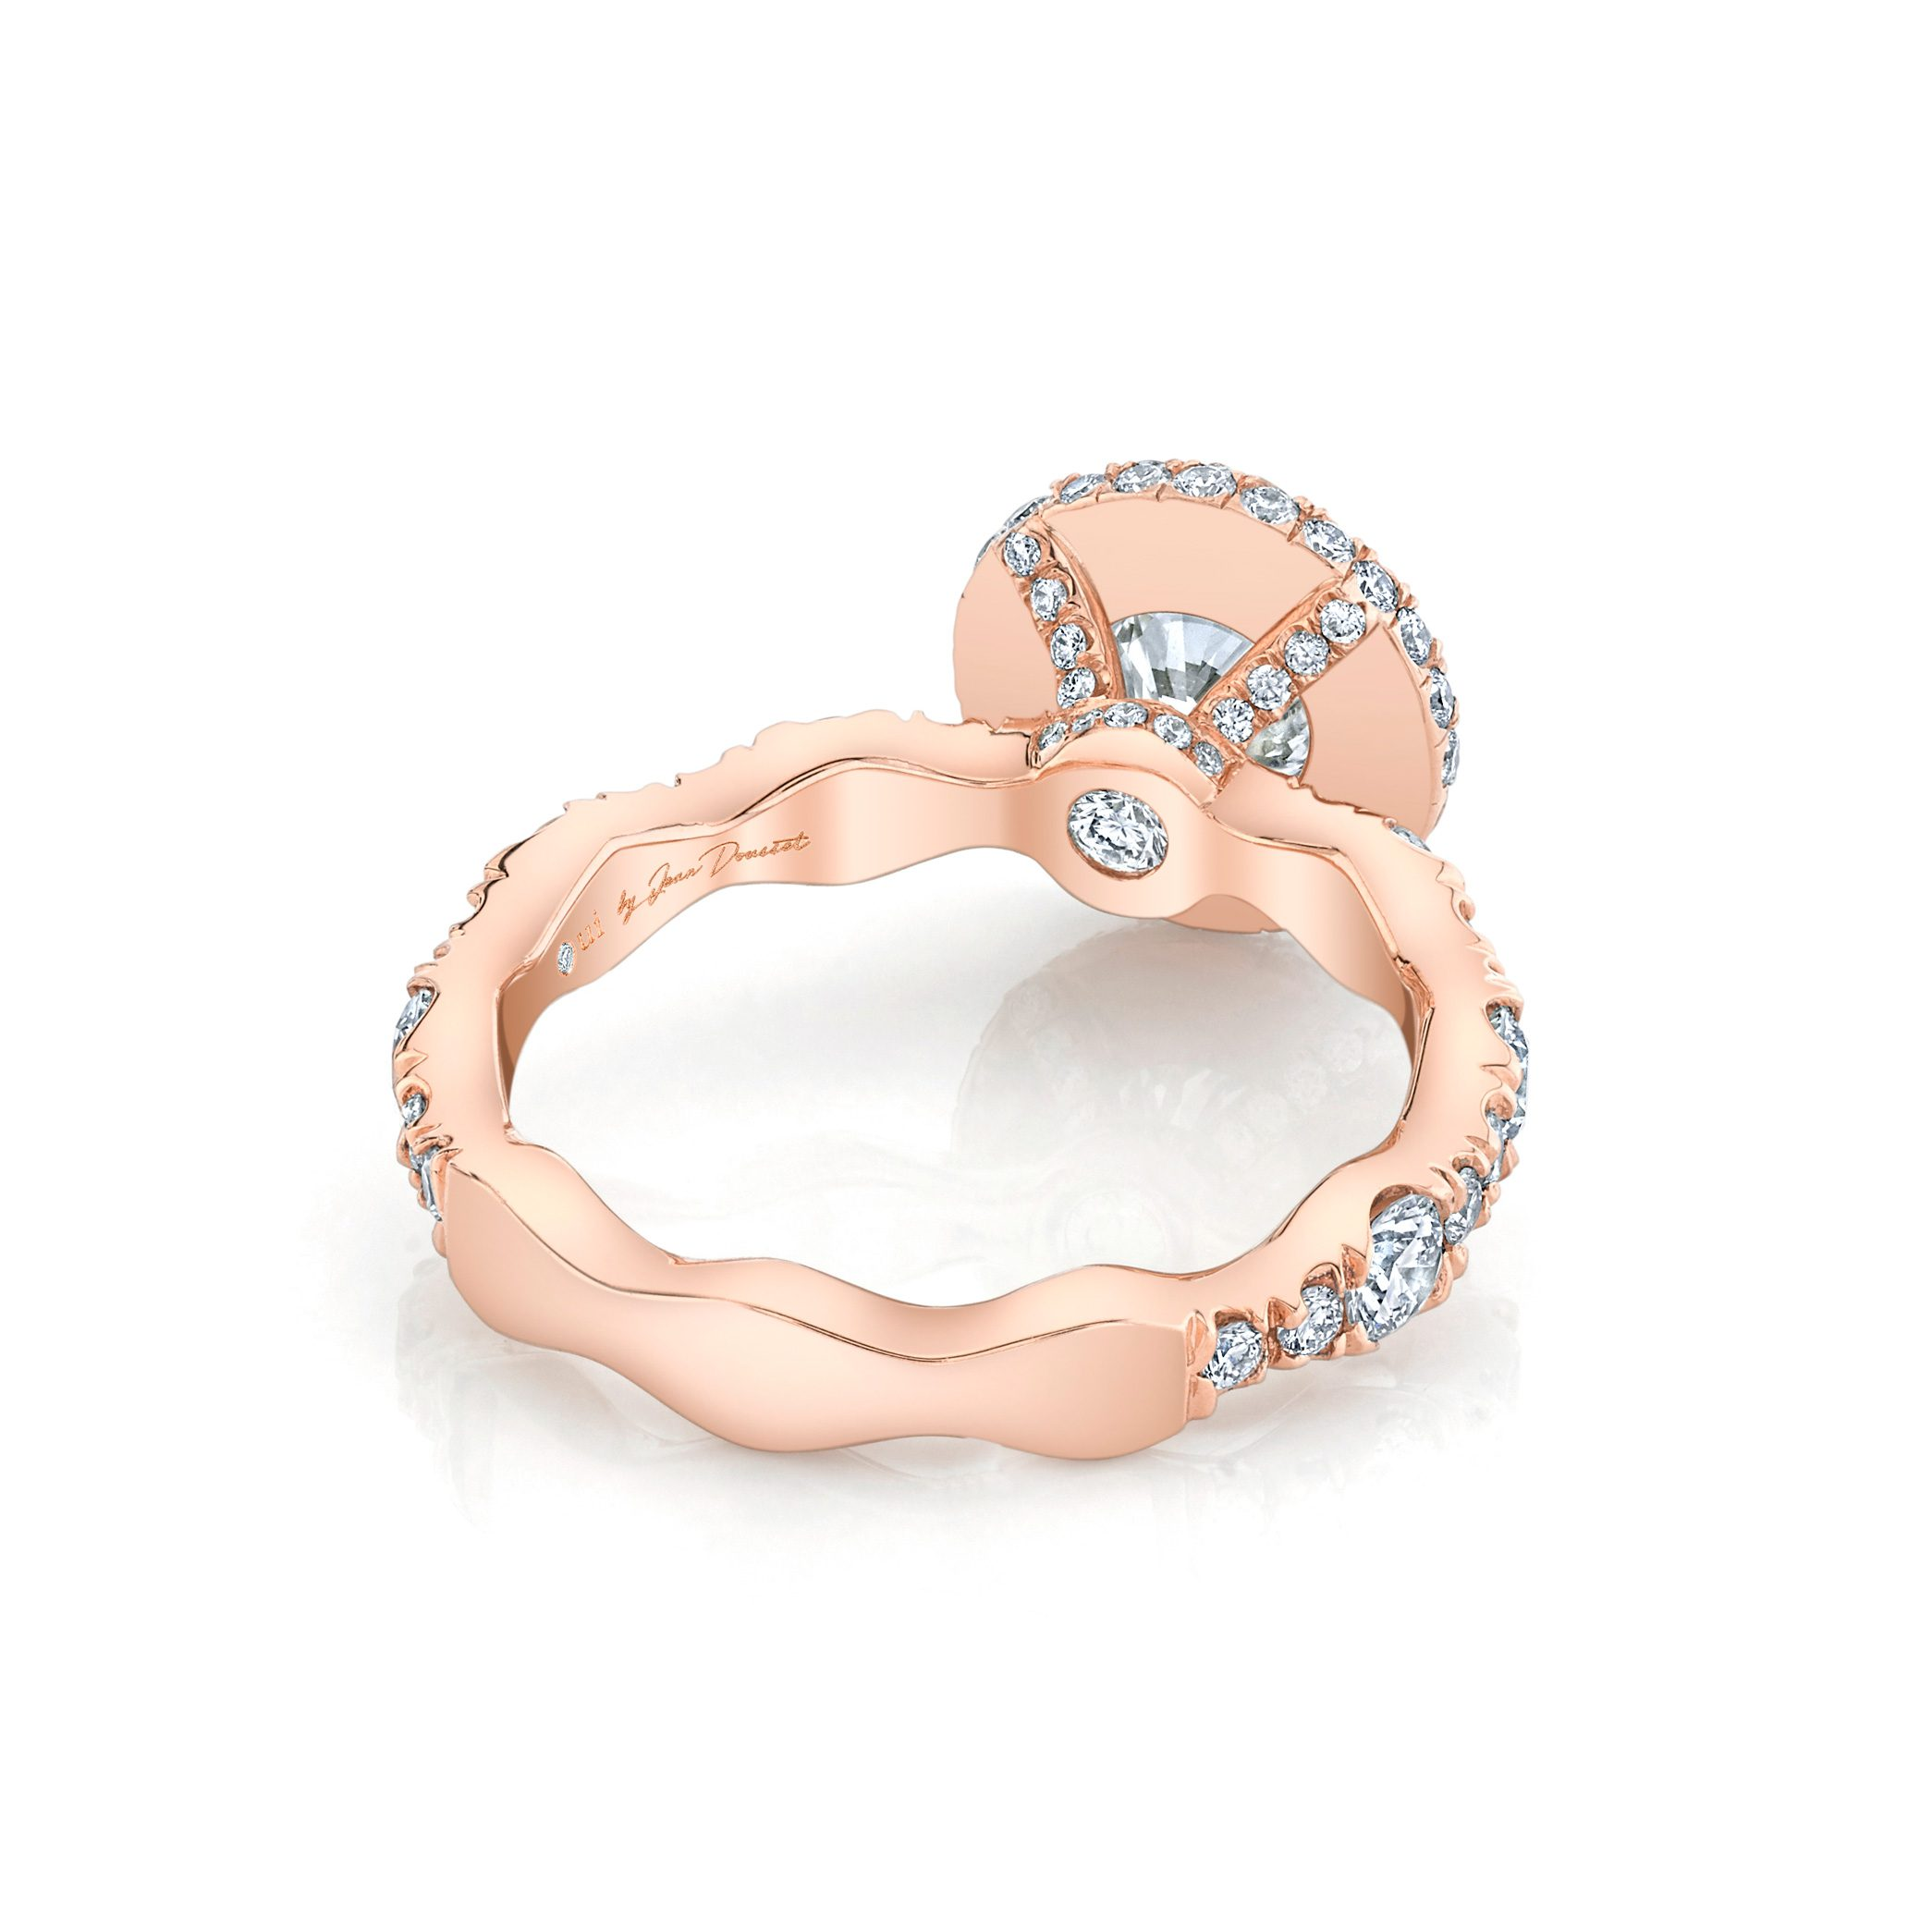 Yvonne Round Brilliant Seamless Halo® Engagement Ring 18k Rose Gold Back View by Oui by Jean Dousset